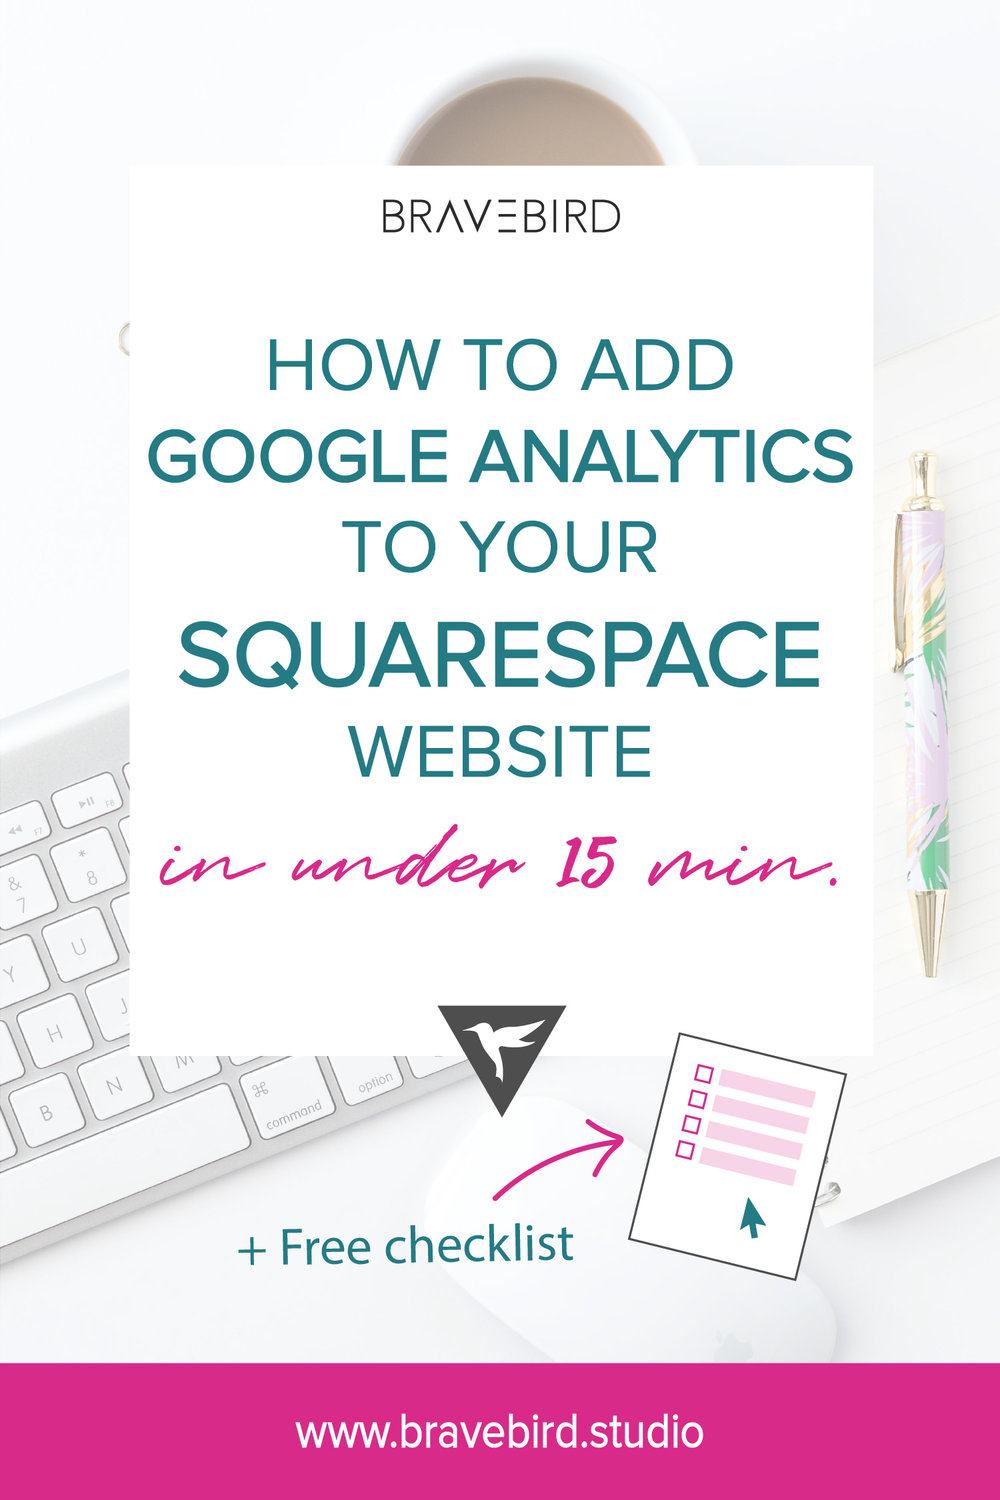 How to add Google Analytics to your Squarespace website in under 15 minutes. | Bravebird Blog